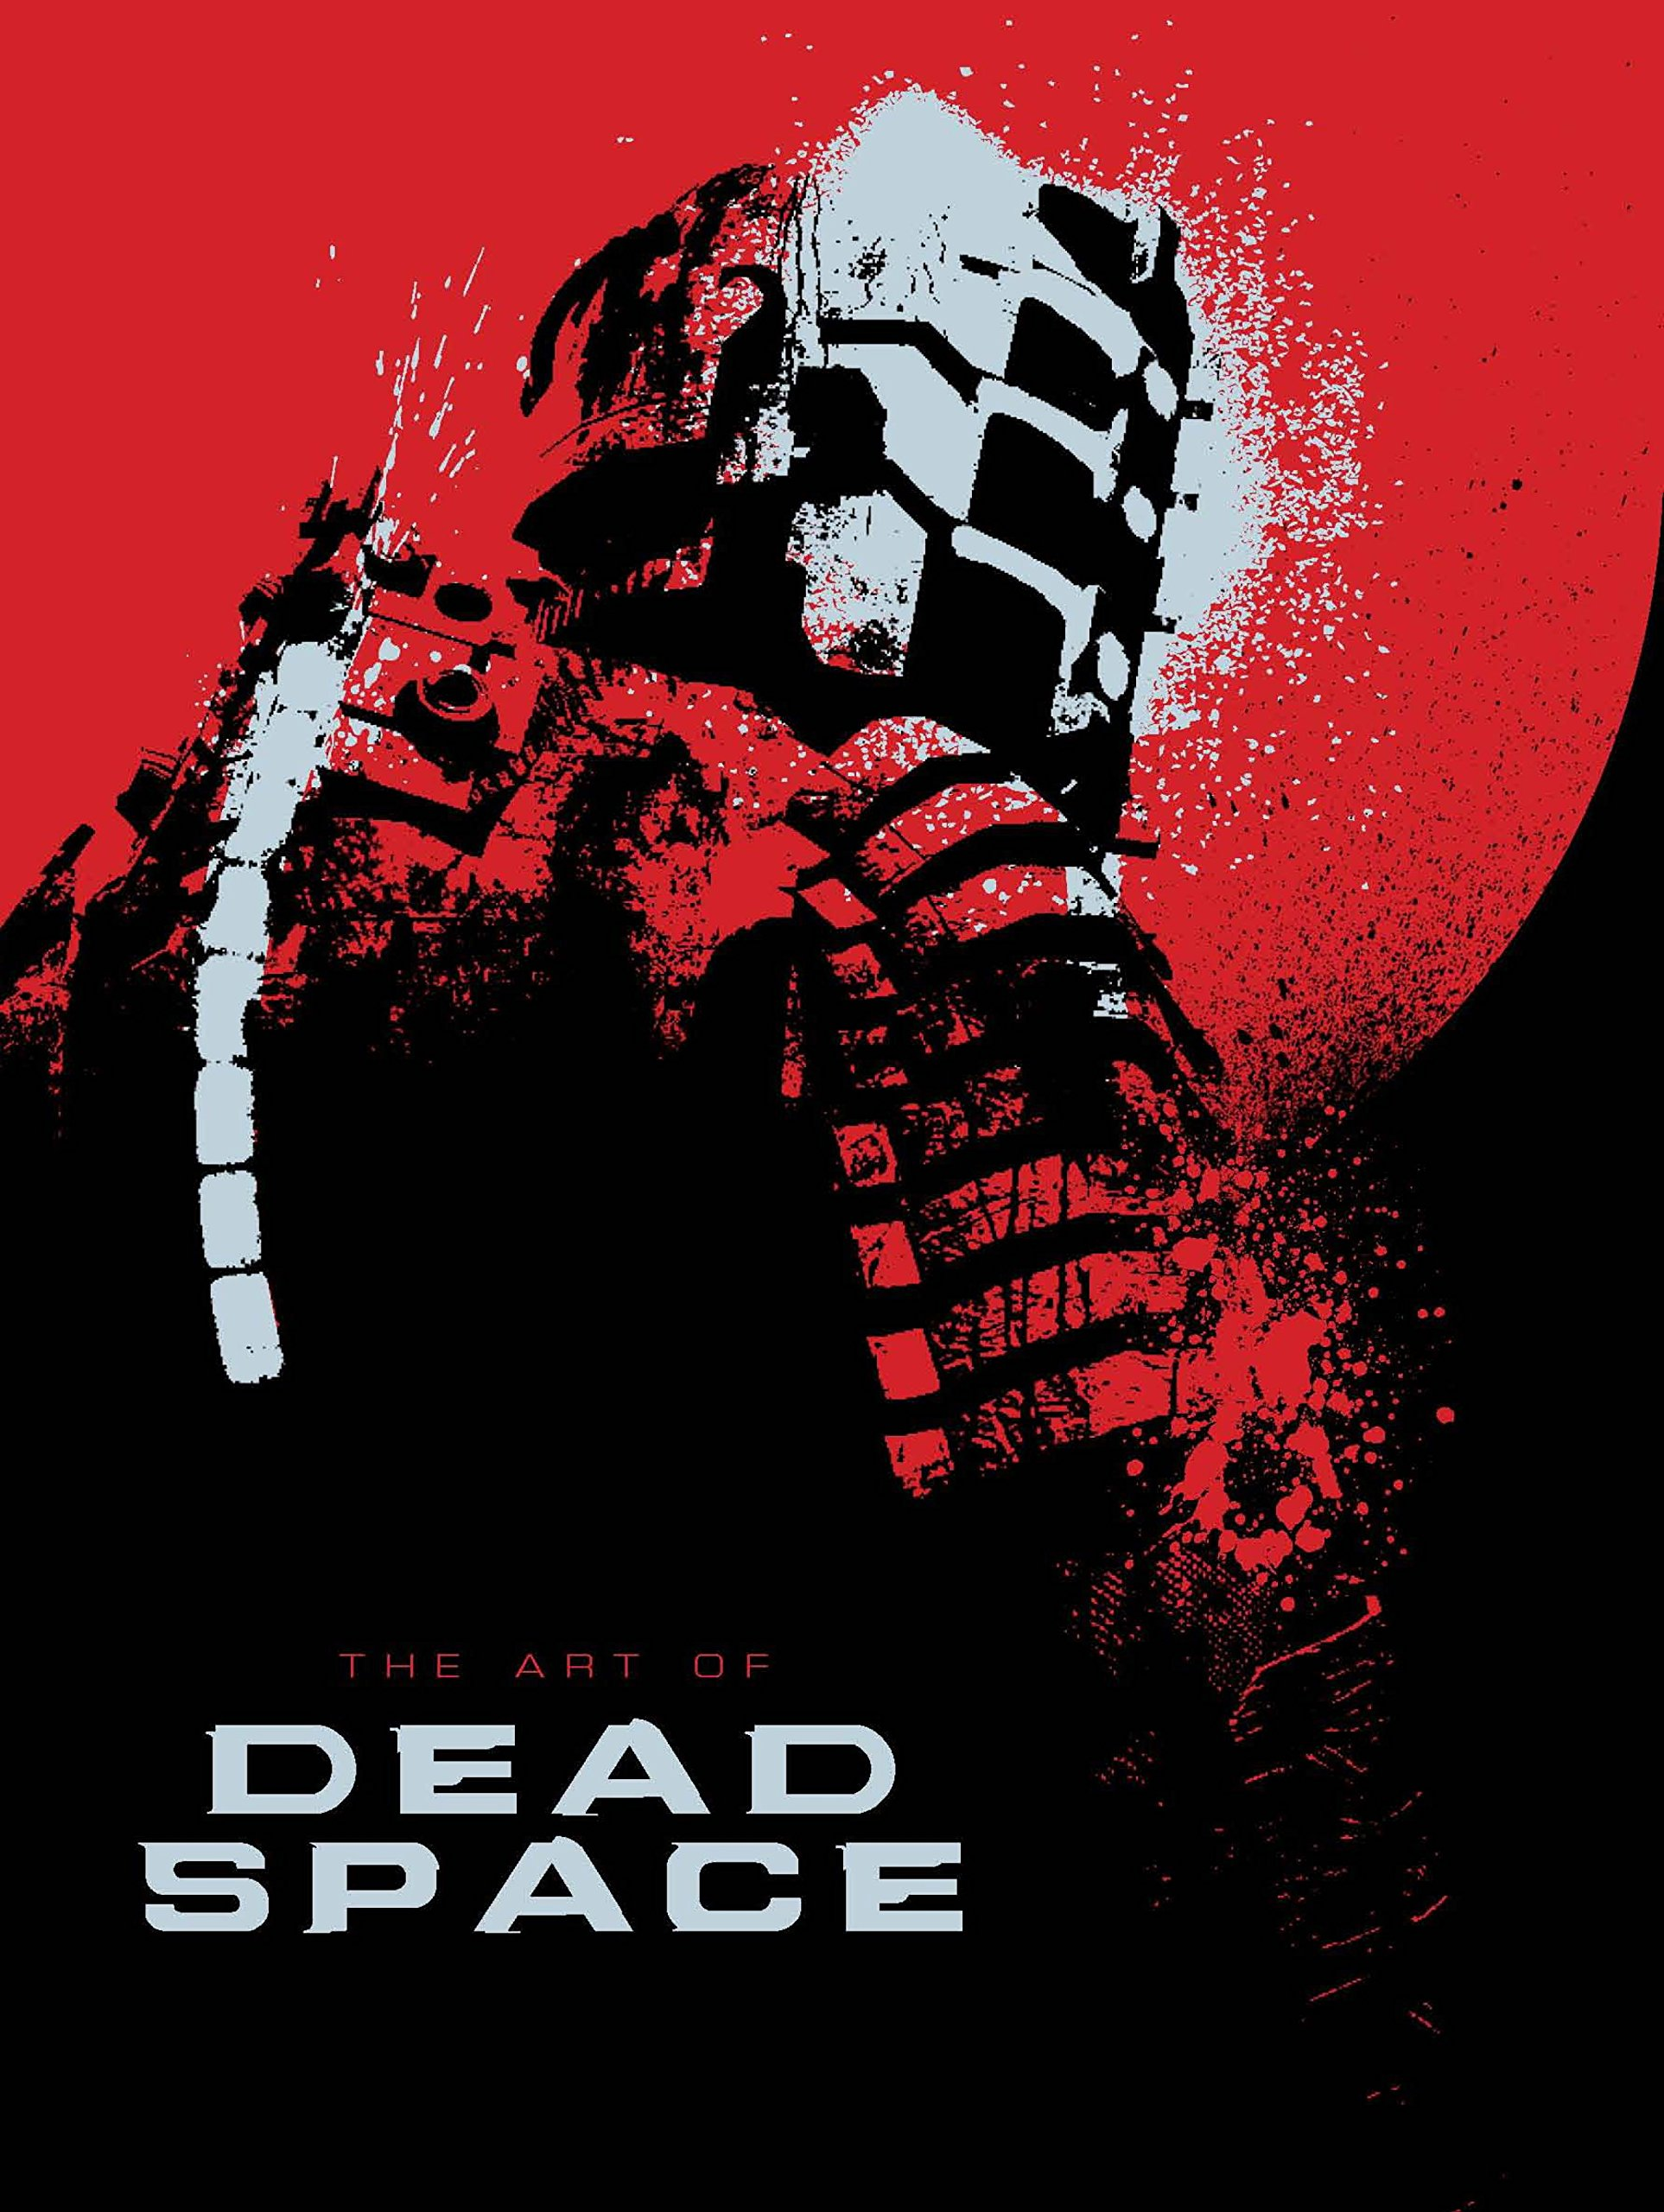 The Art Of Dead Space Amazon De Robinson Martin Fremdsprachige